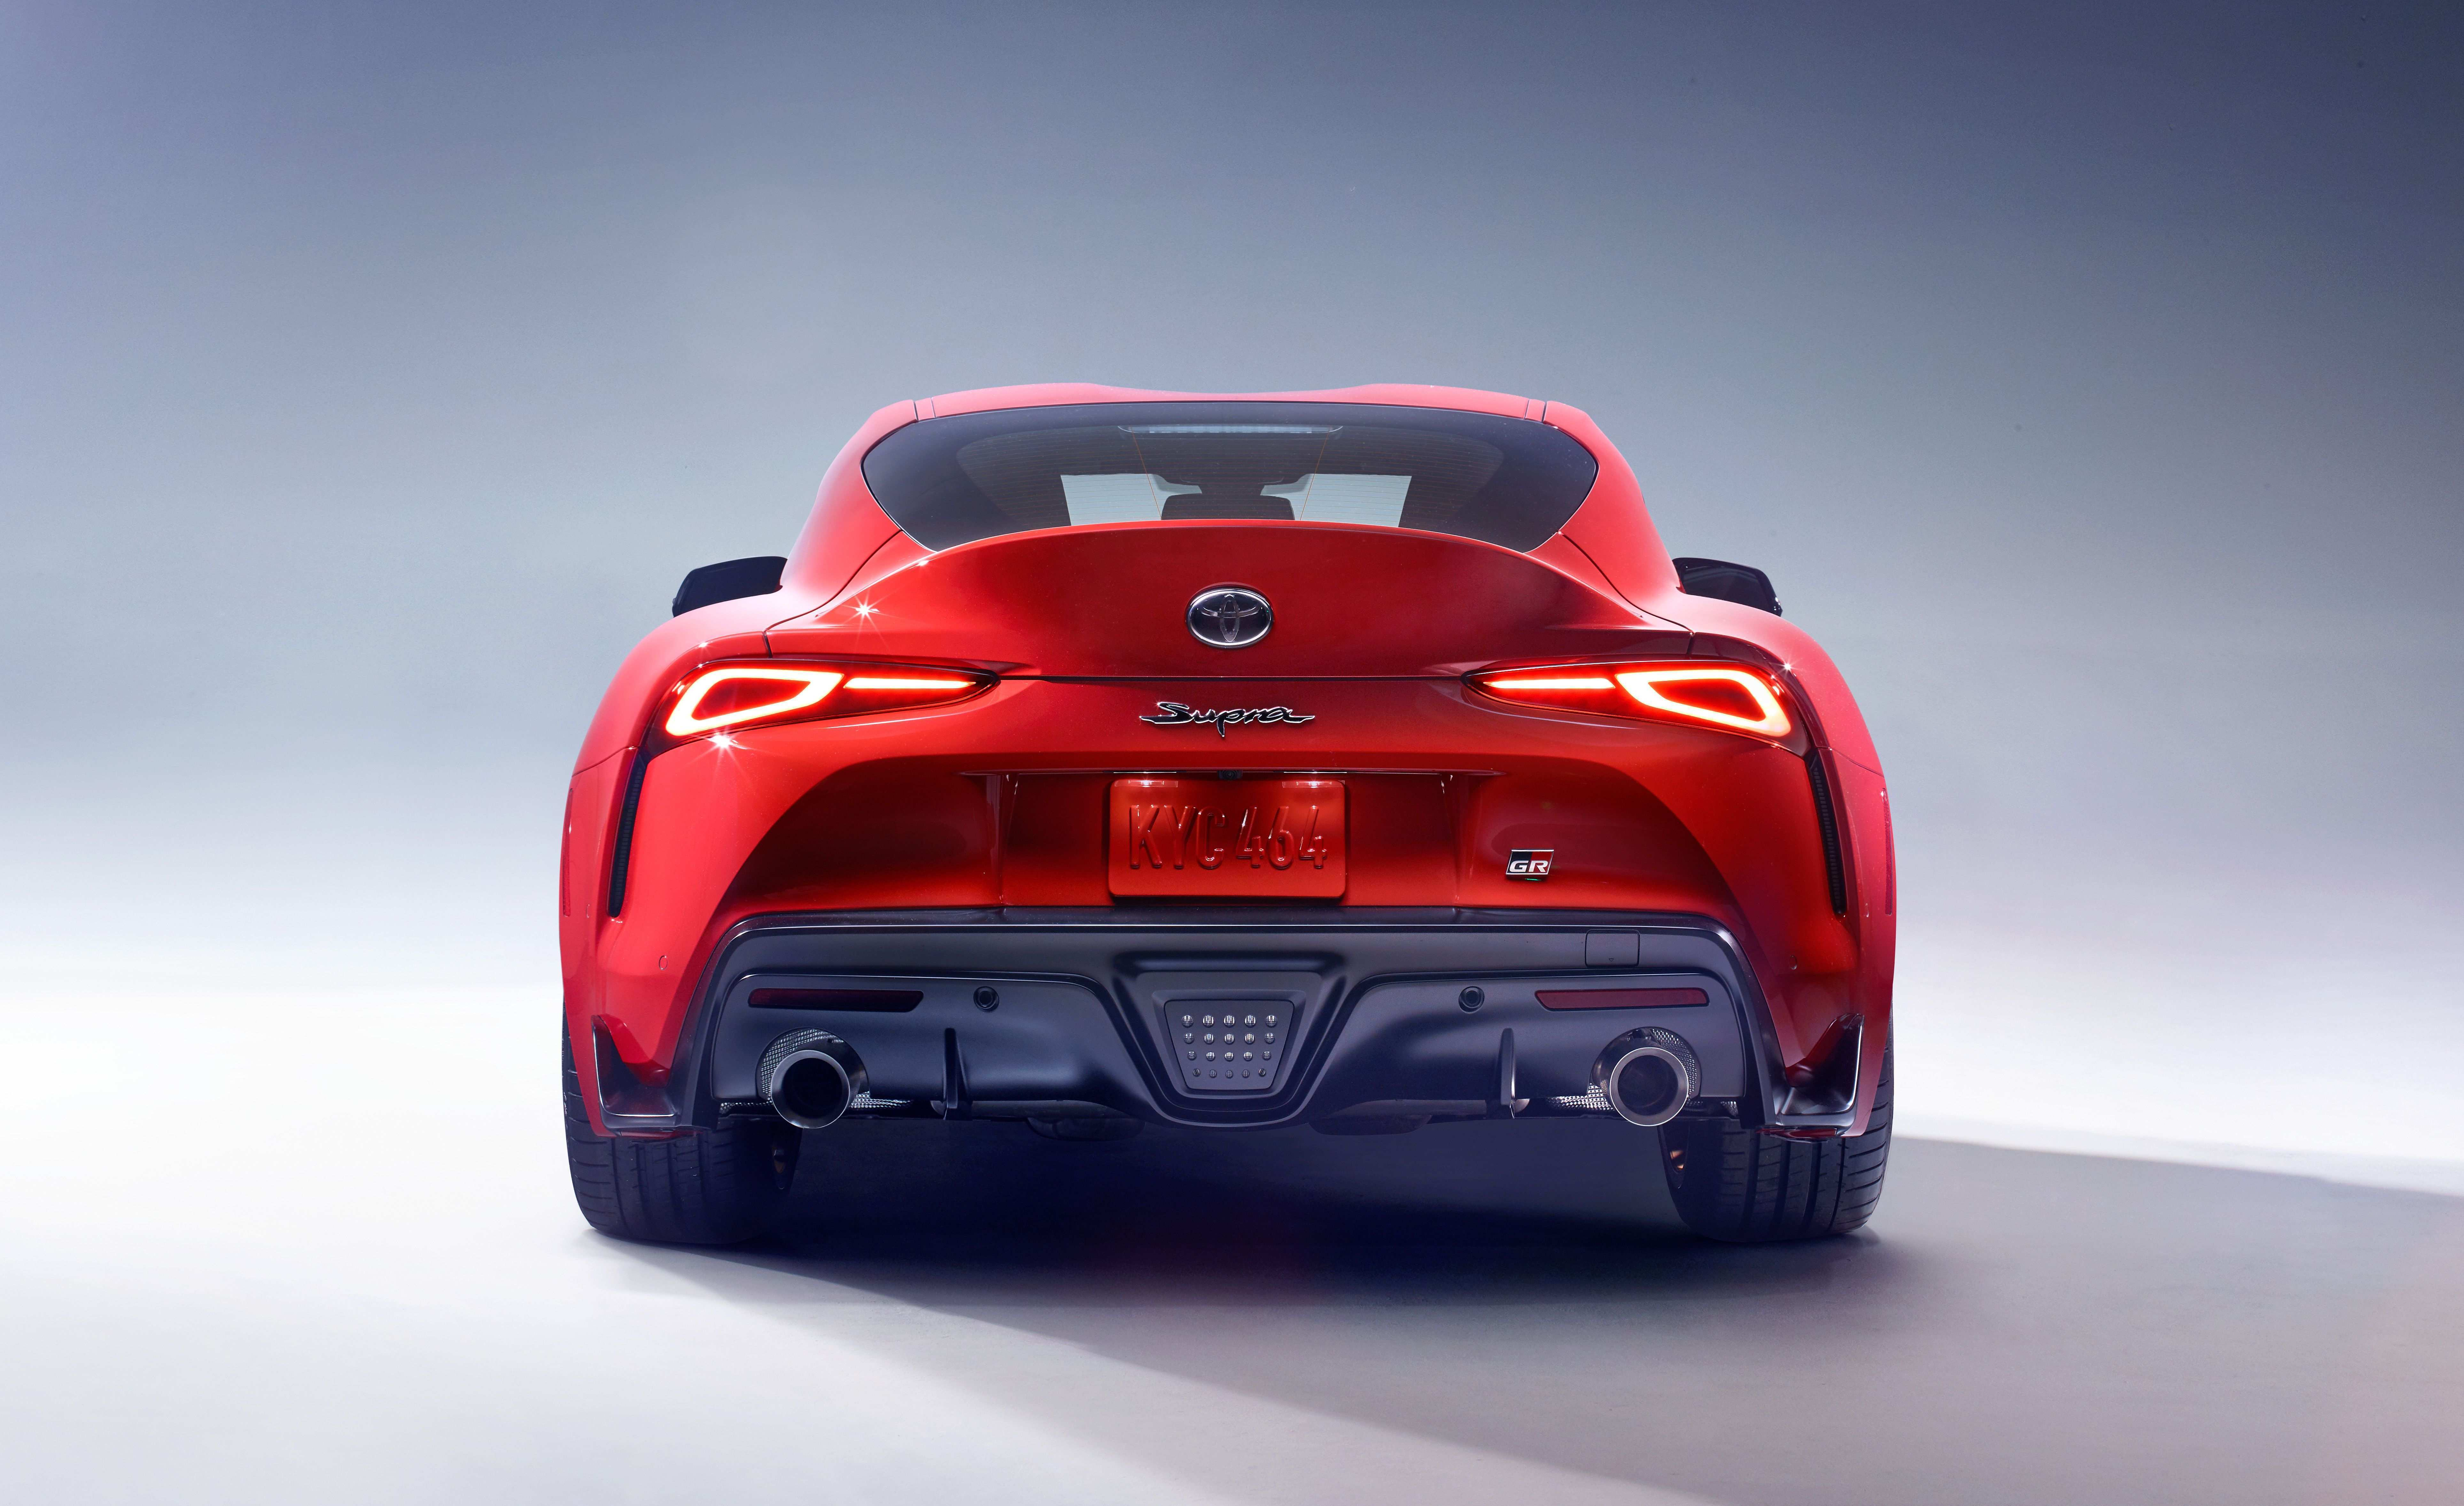 60 Gallery of 2020 Toyota Supra Price New Review with 2020 Toyota Supra Price